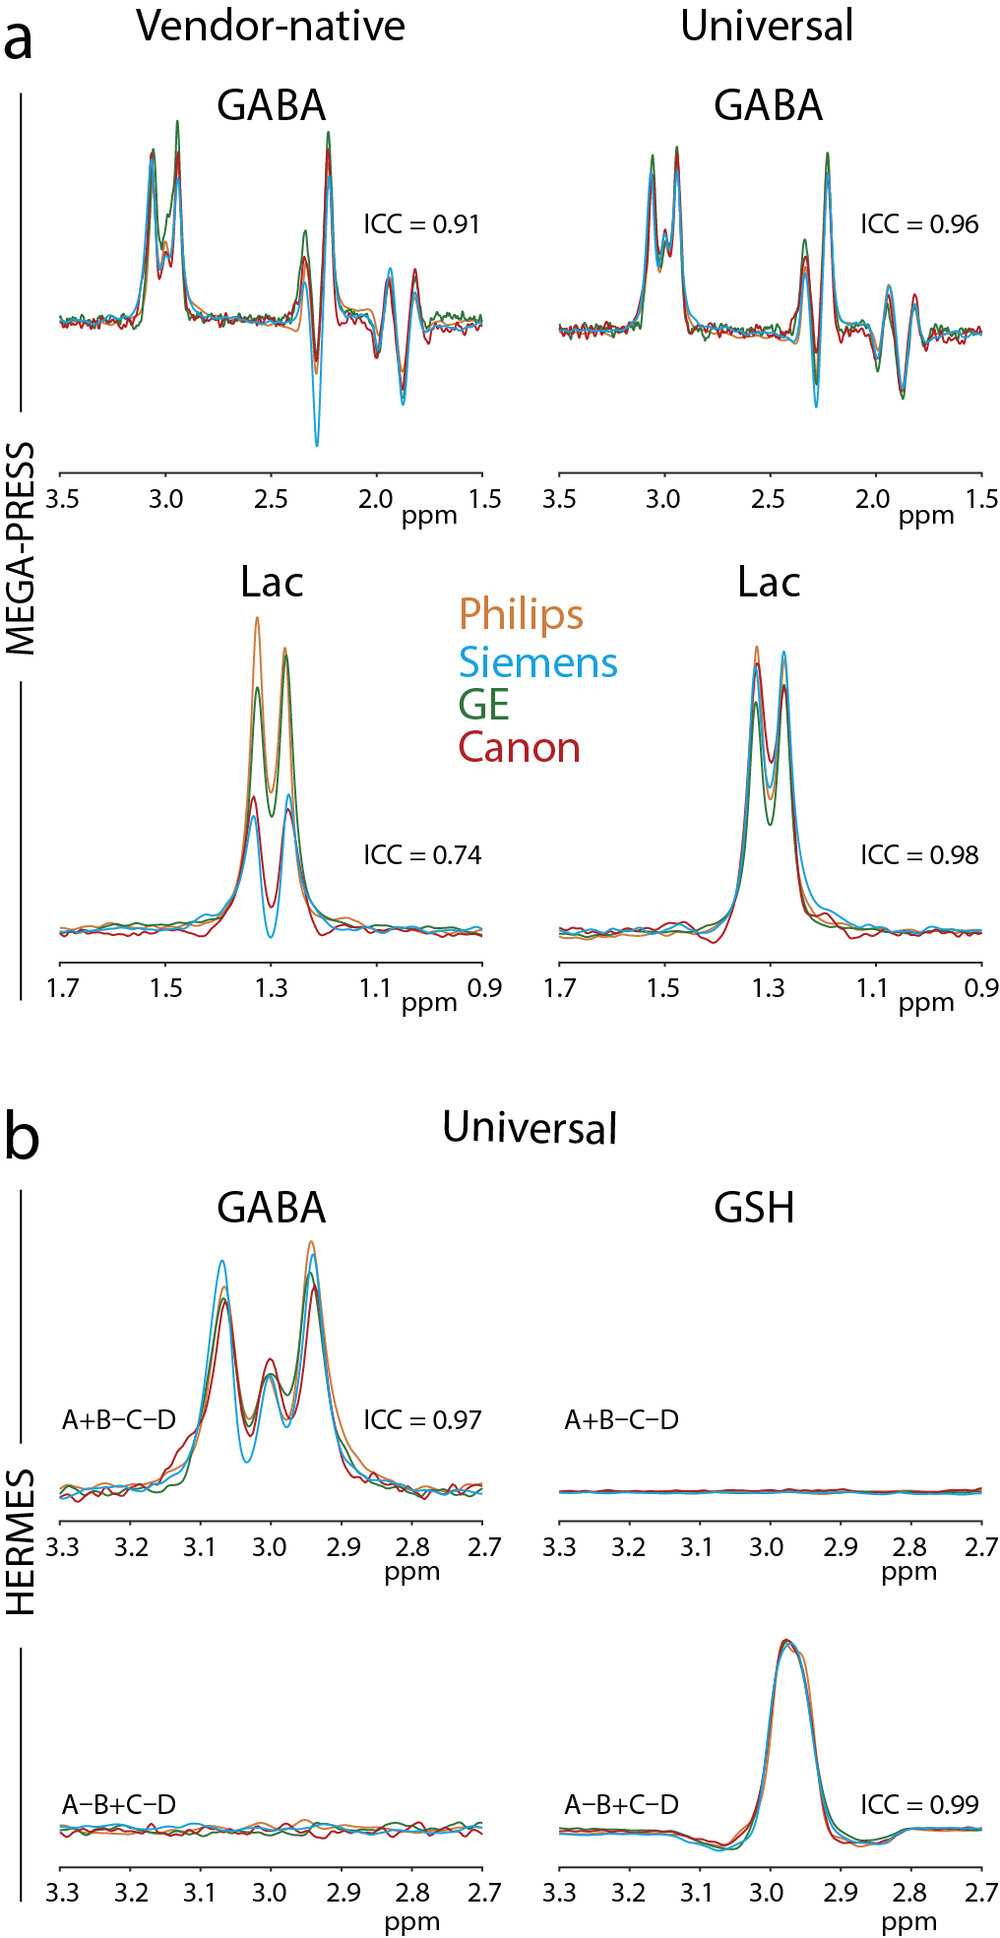 Figure 2:  a) MEGA-PRESS experiment using the GABA phantom (TE = 68 ms) and Lac phantom (TE = 140 ms) from vendor-native sequences (left) and the universal sequence (right). b) Edited spectra from HERMES experiments acquired using the universal sequence, performed in a GABA phantom (left) and a GSH phantom (right).